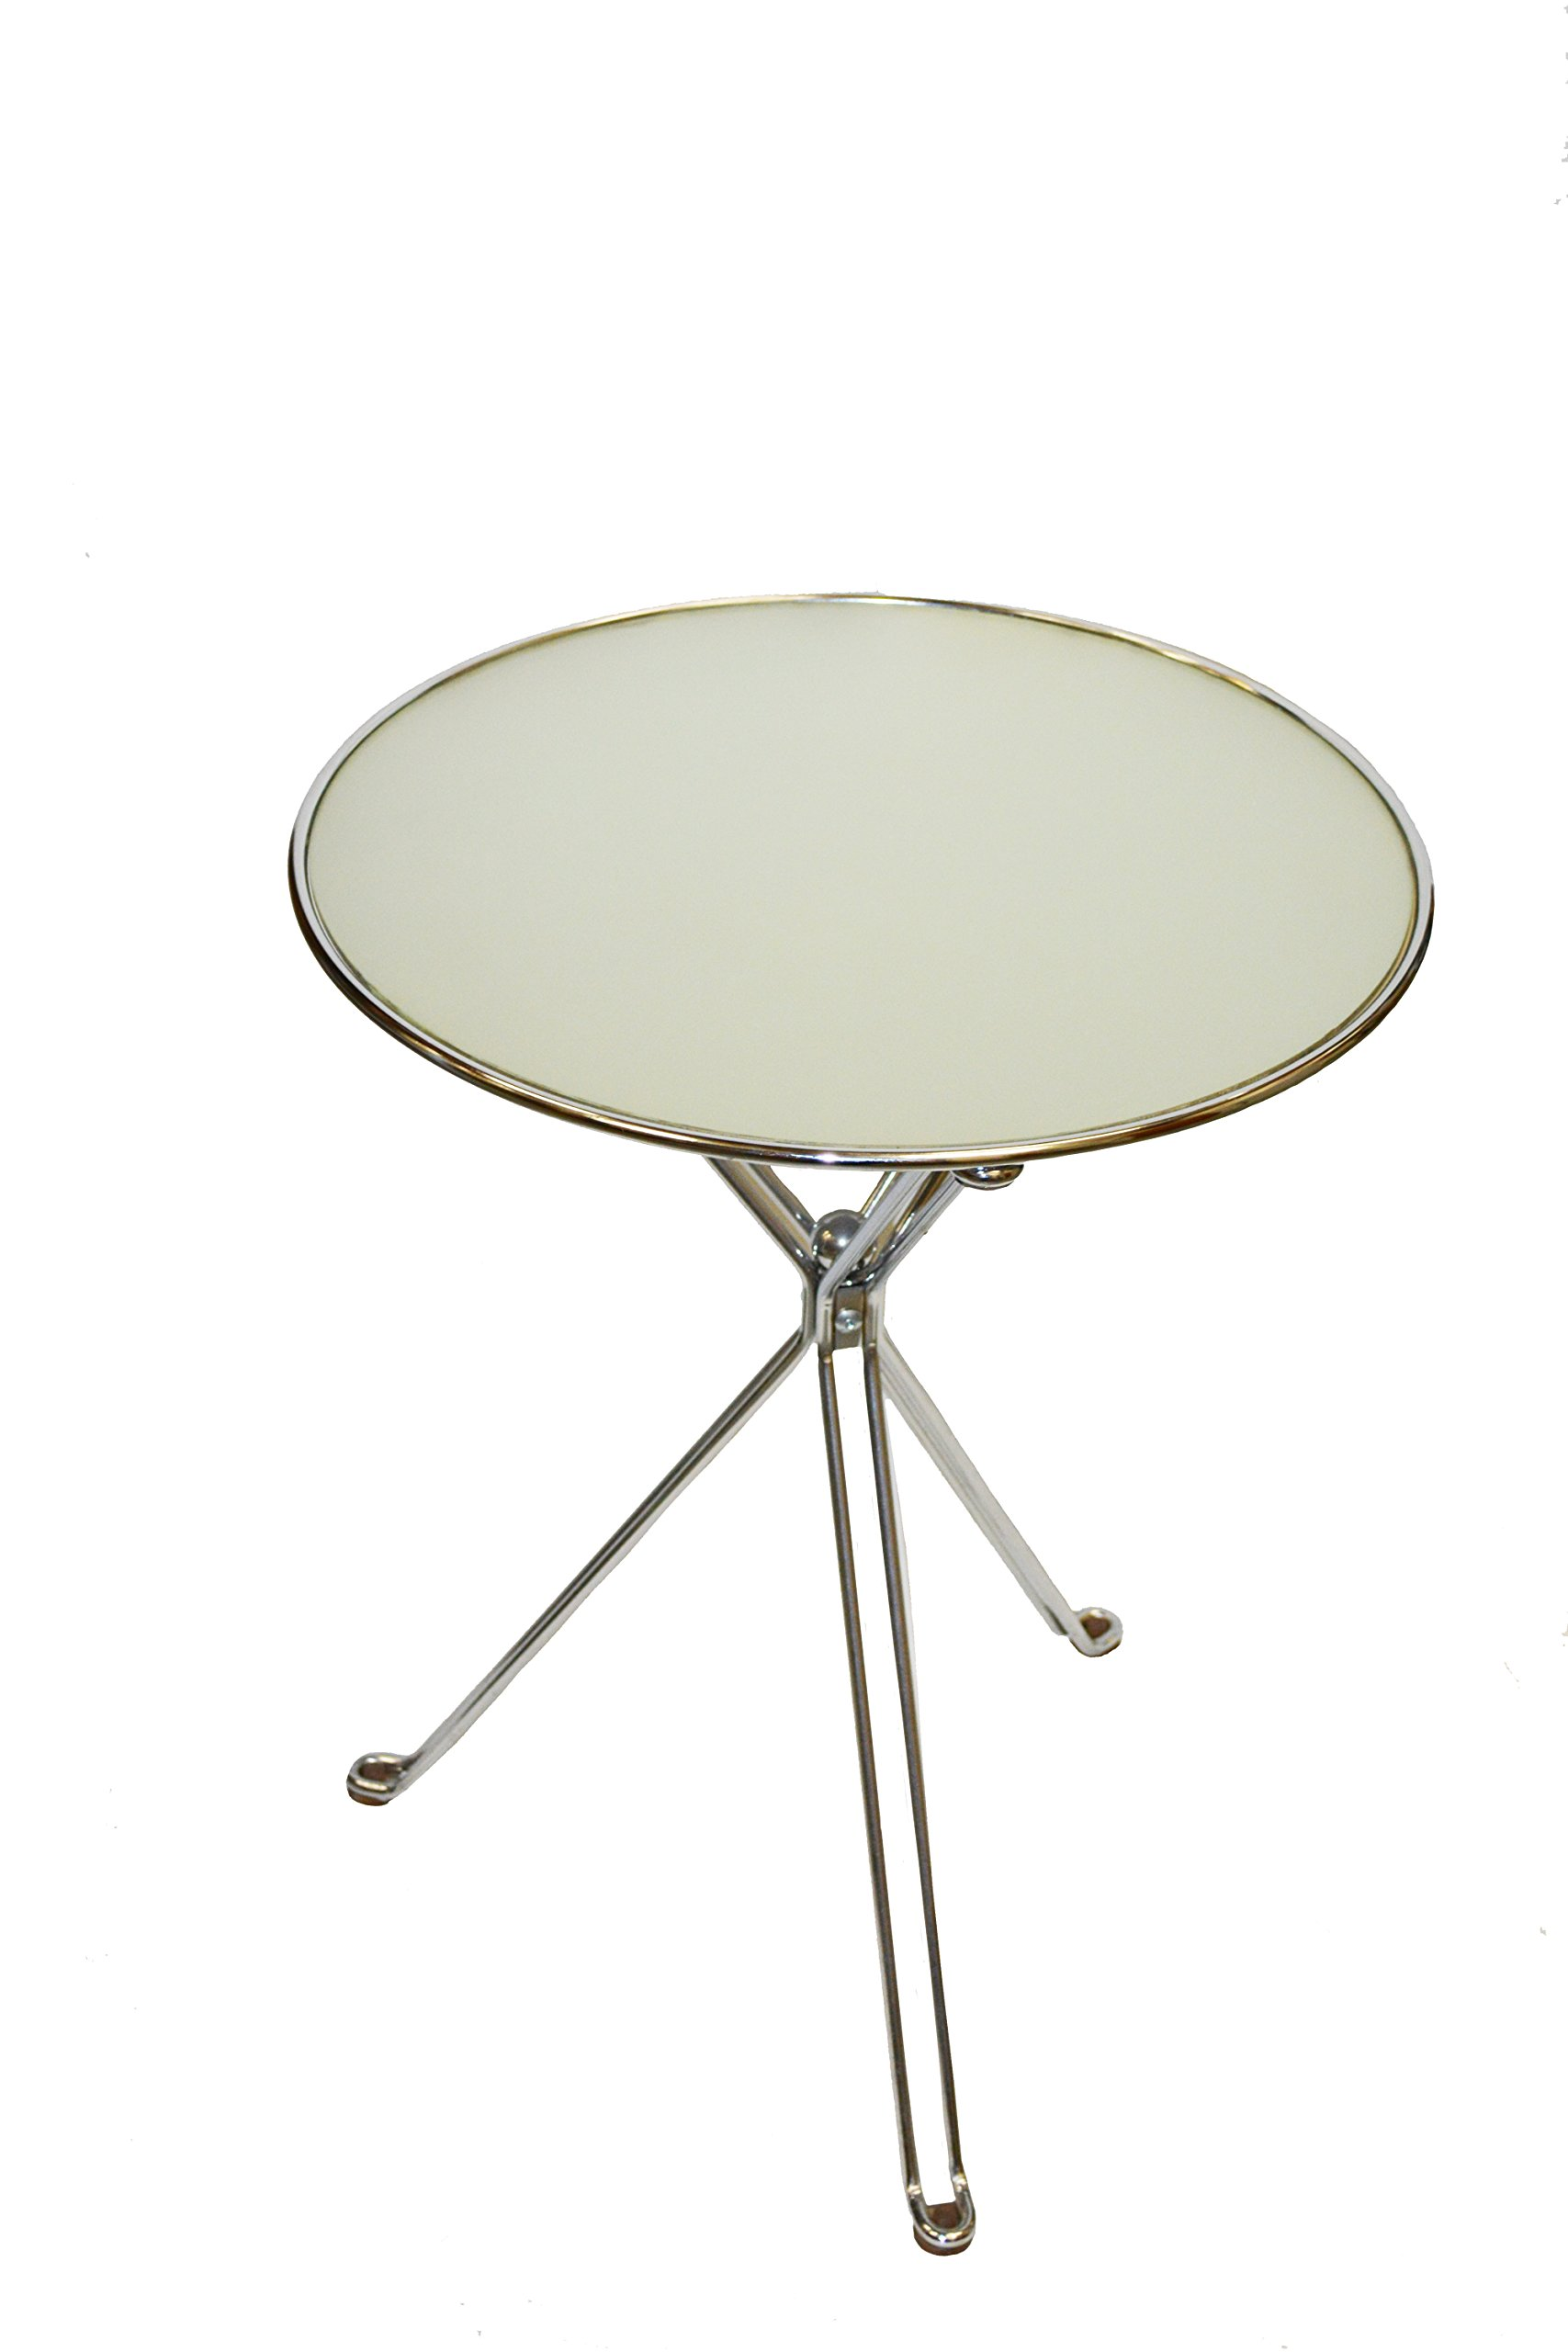 Round Side Table with Steel Frame and a Glass Top